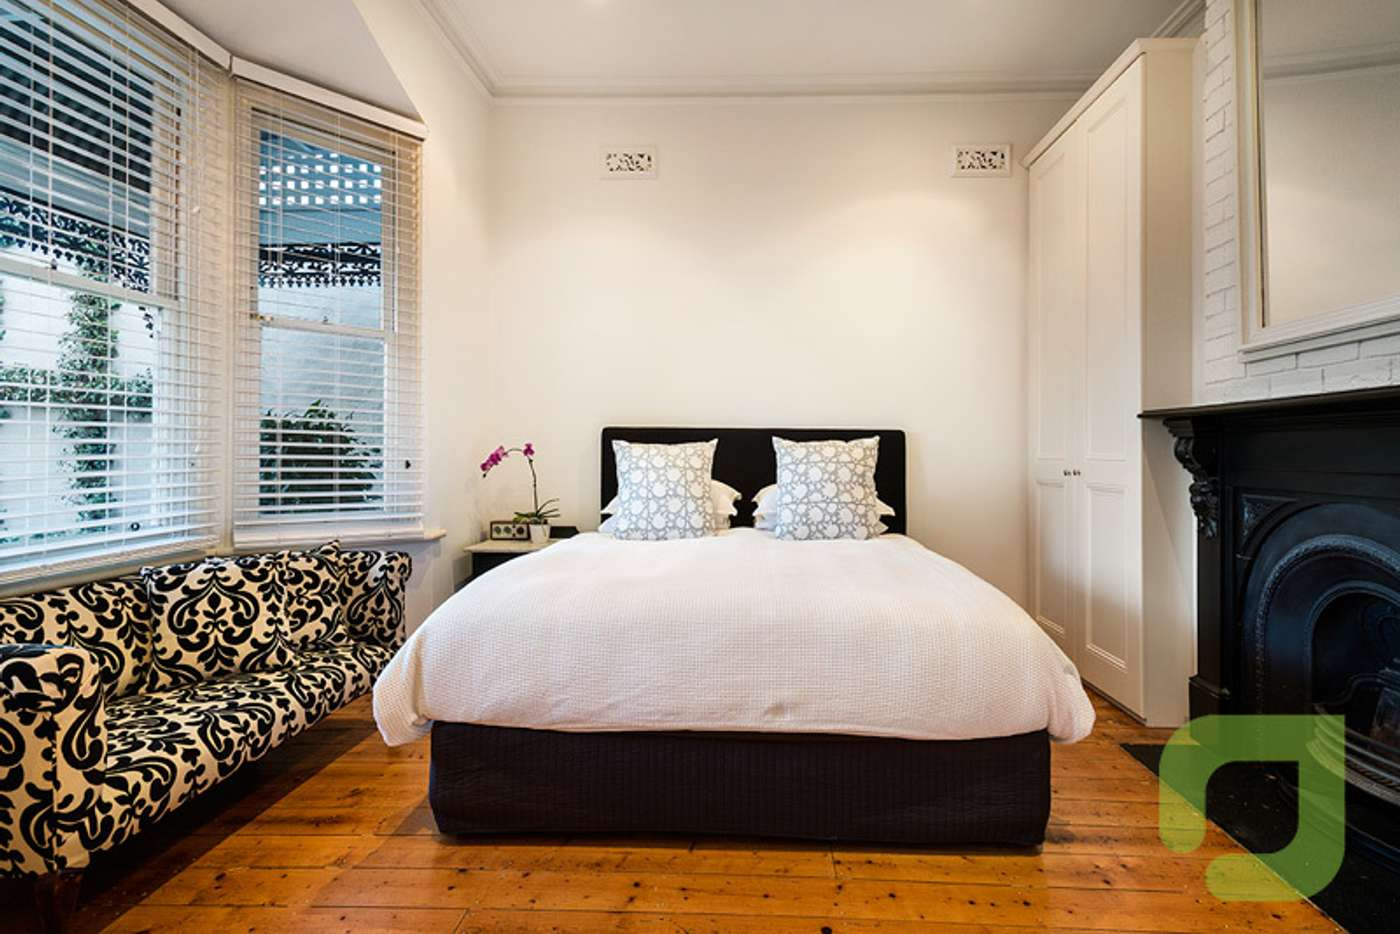 Fifth view of Homely house listing, 142 Stephen Street, Yarraville VIC 3013